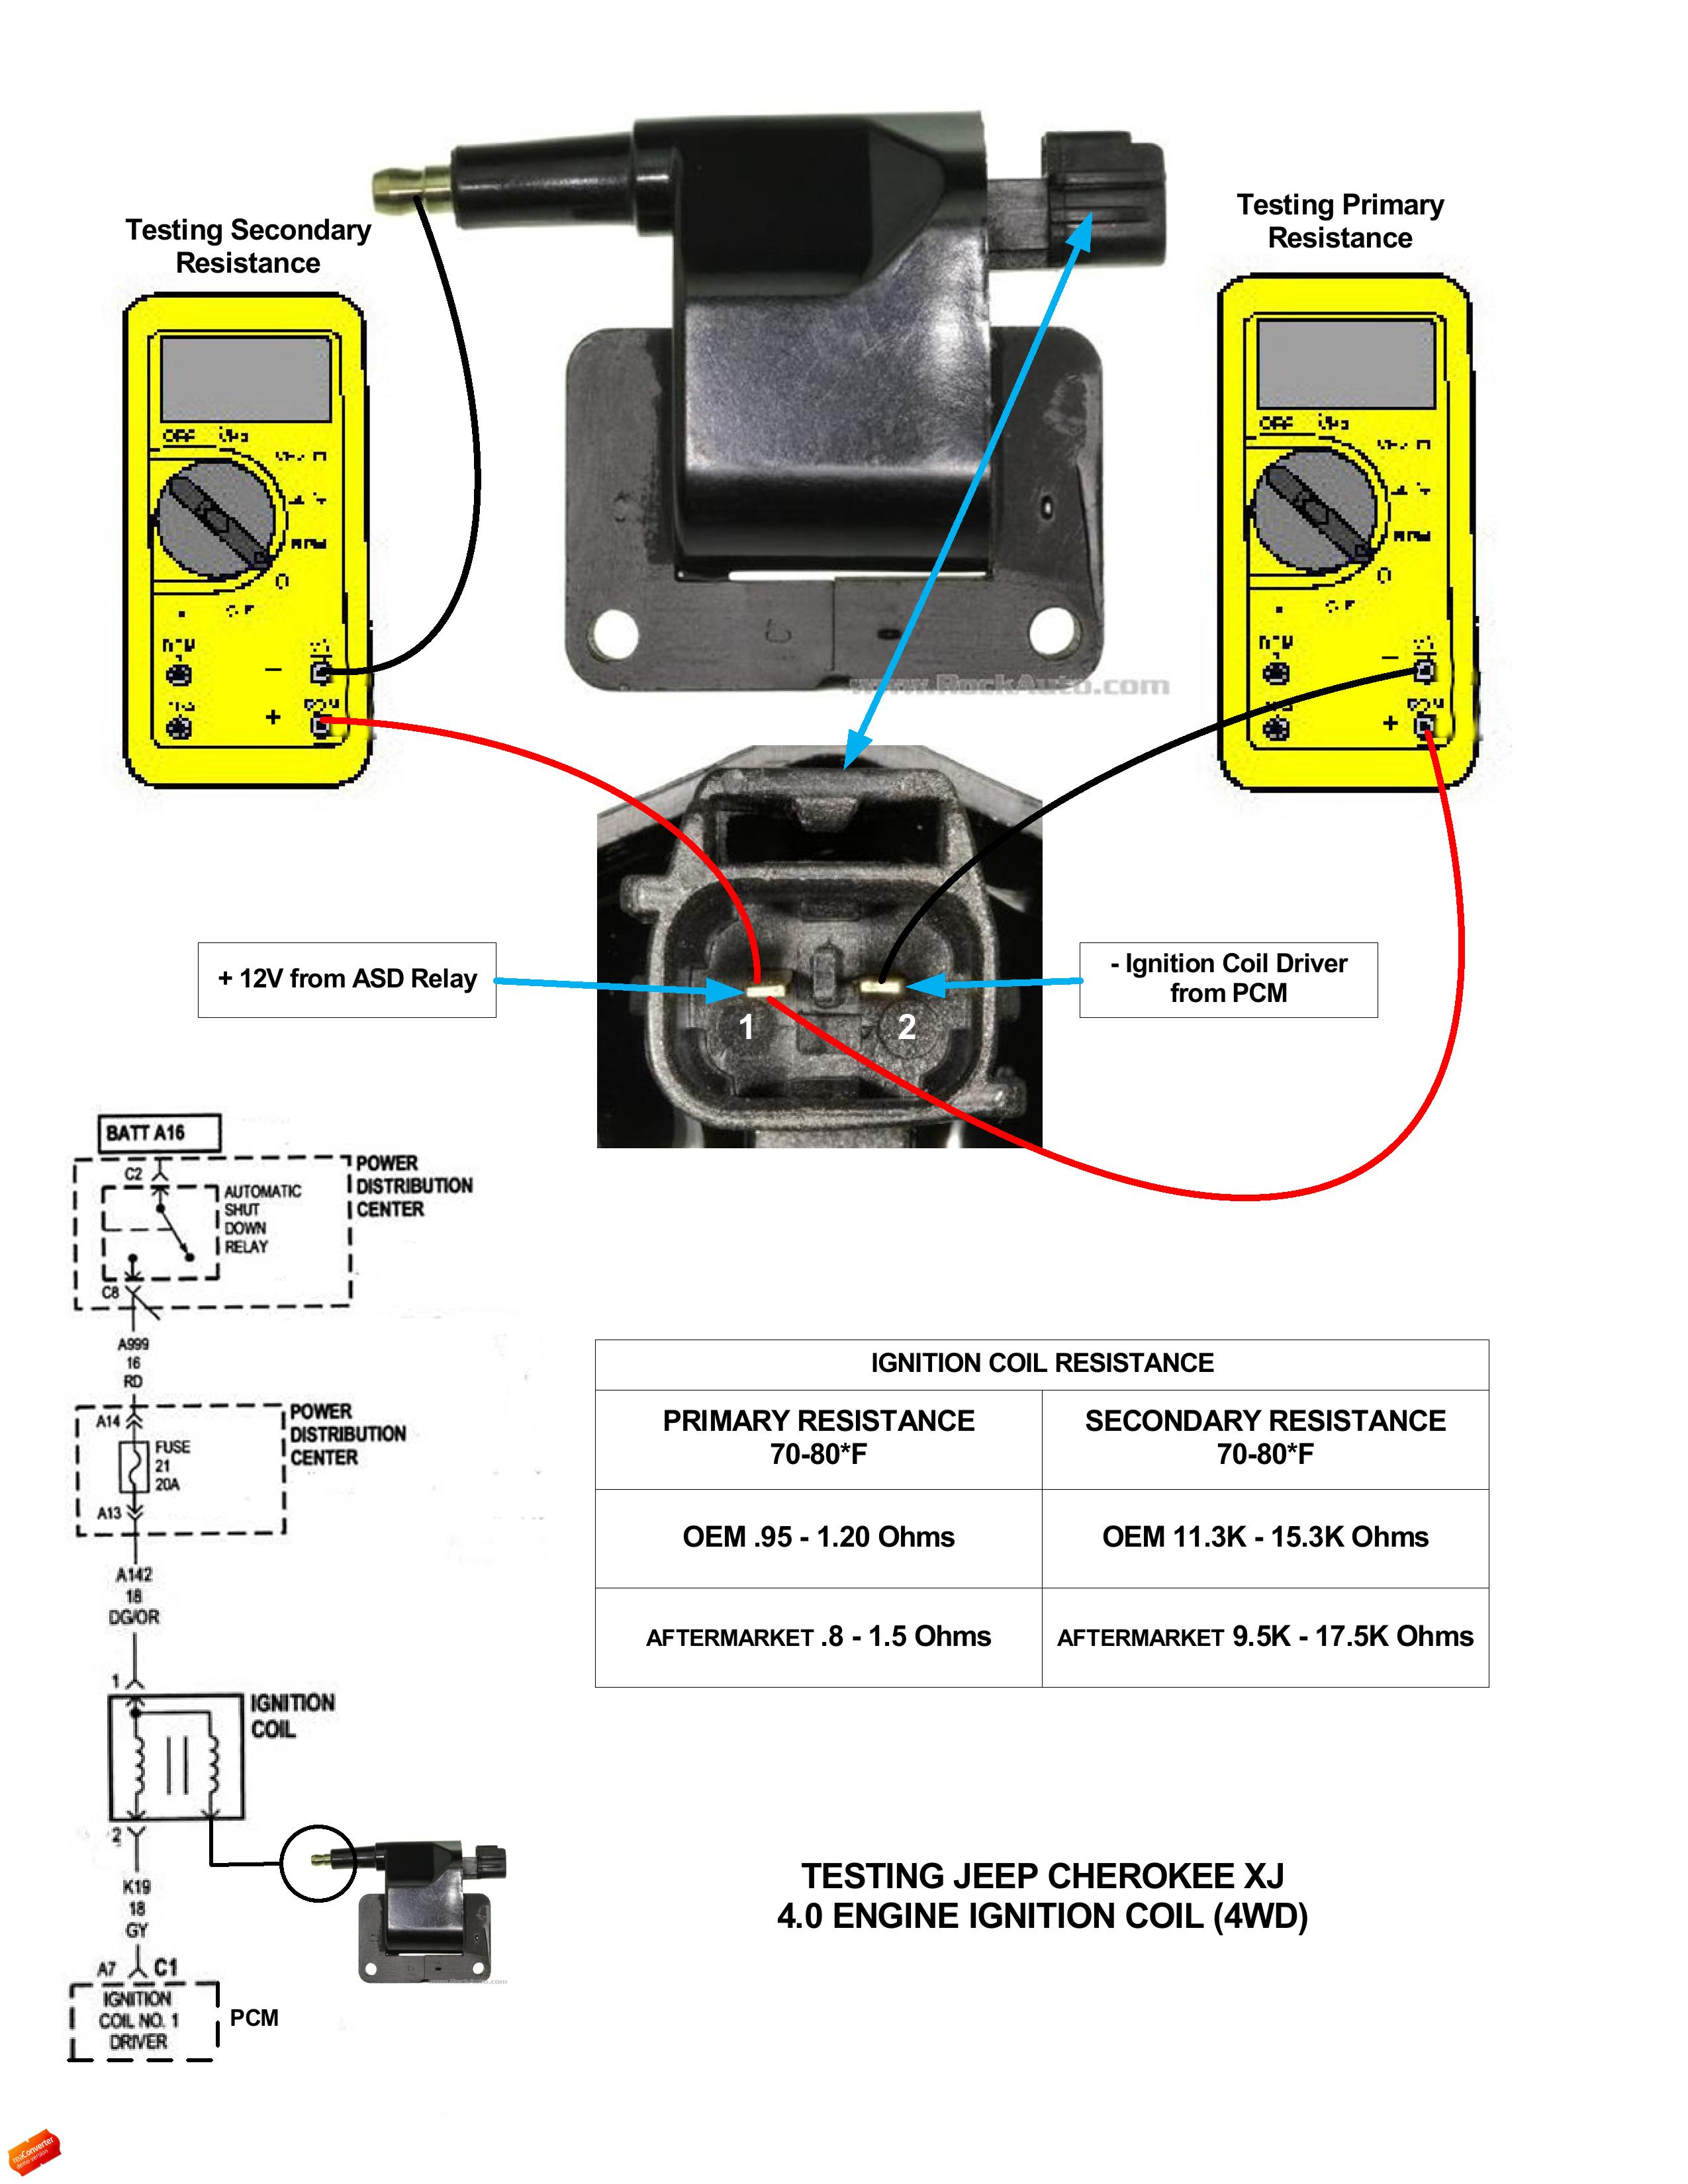 1998 jeep grand cherokee ignition coil wiring diagram for a car stereo great info threads in here page 4 forum